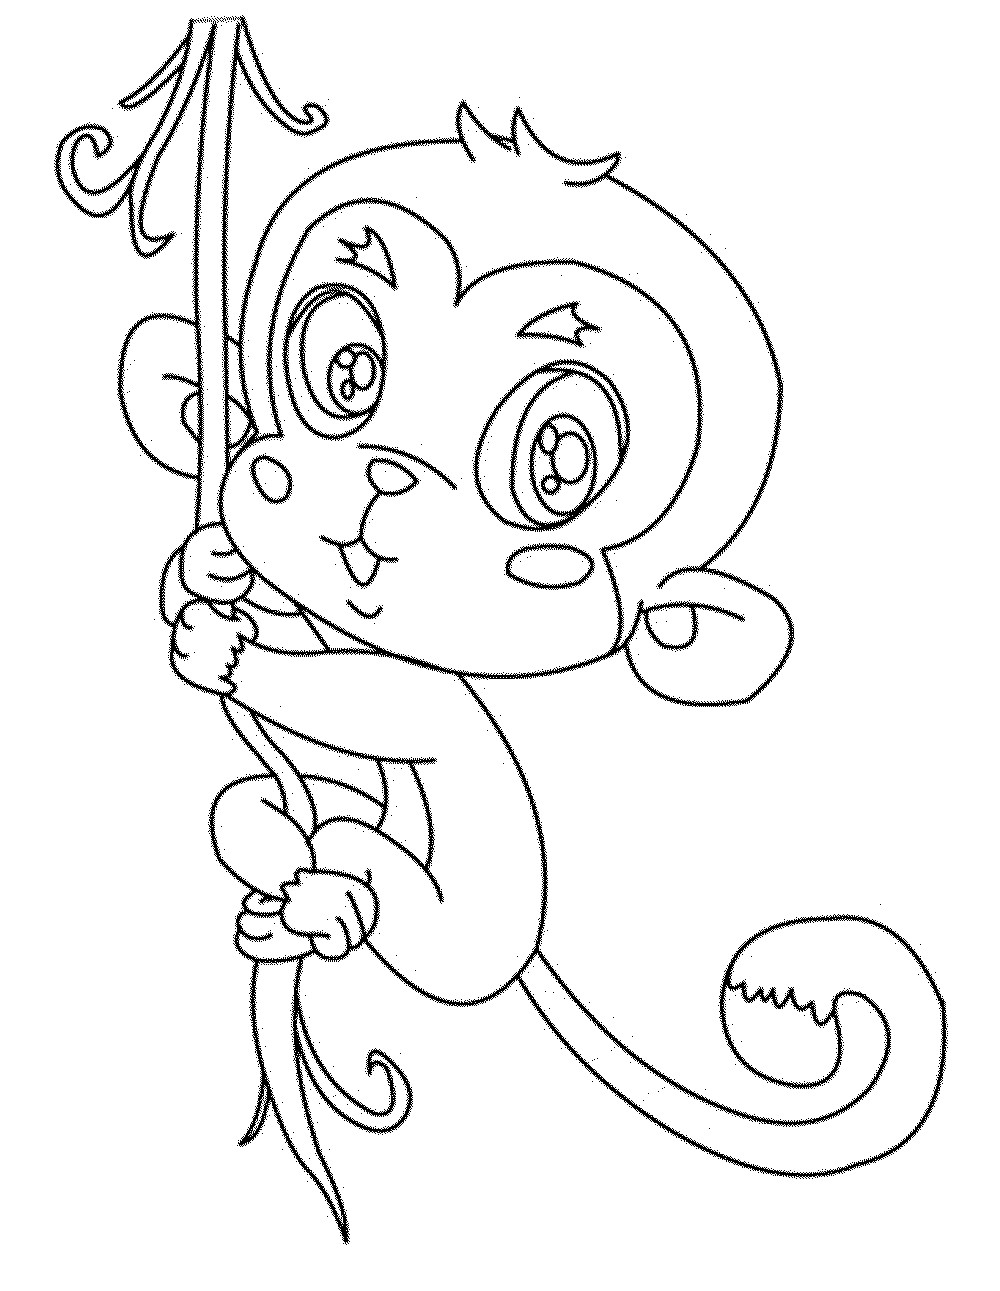 chimpanzee pictures to print top 25 free printable monkey coloring pages for kids to chimpanzee pictures print